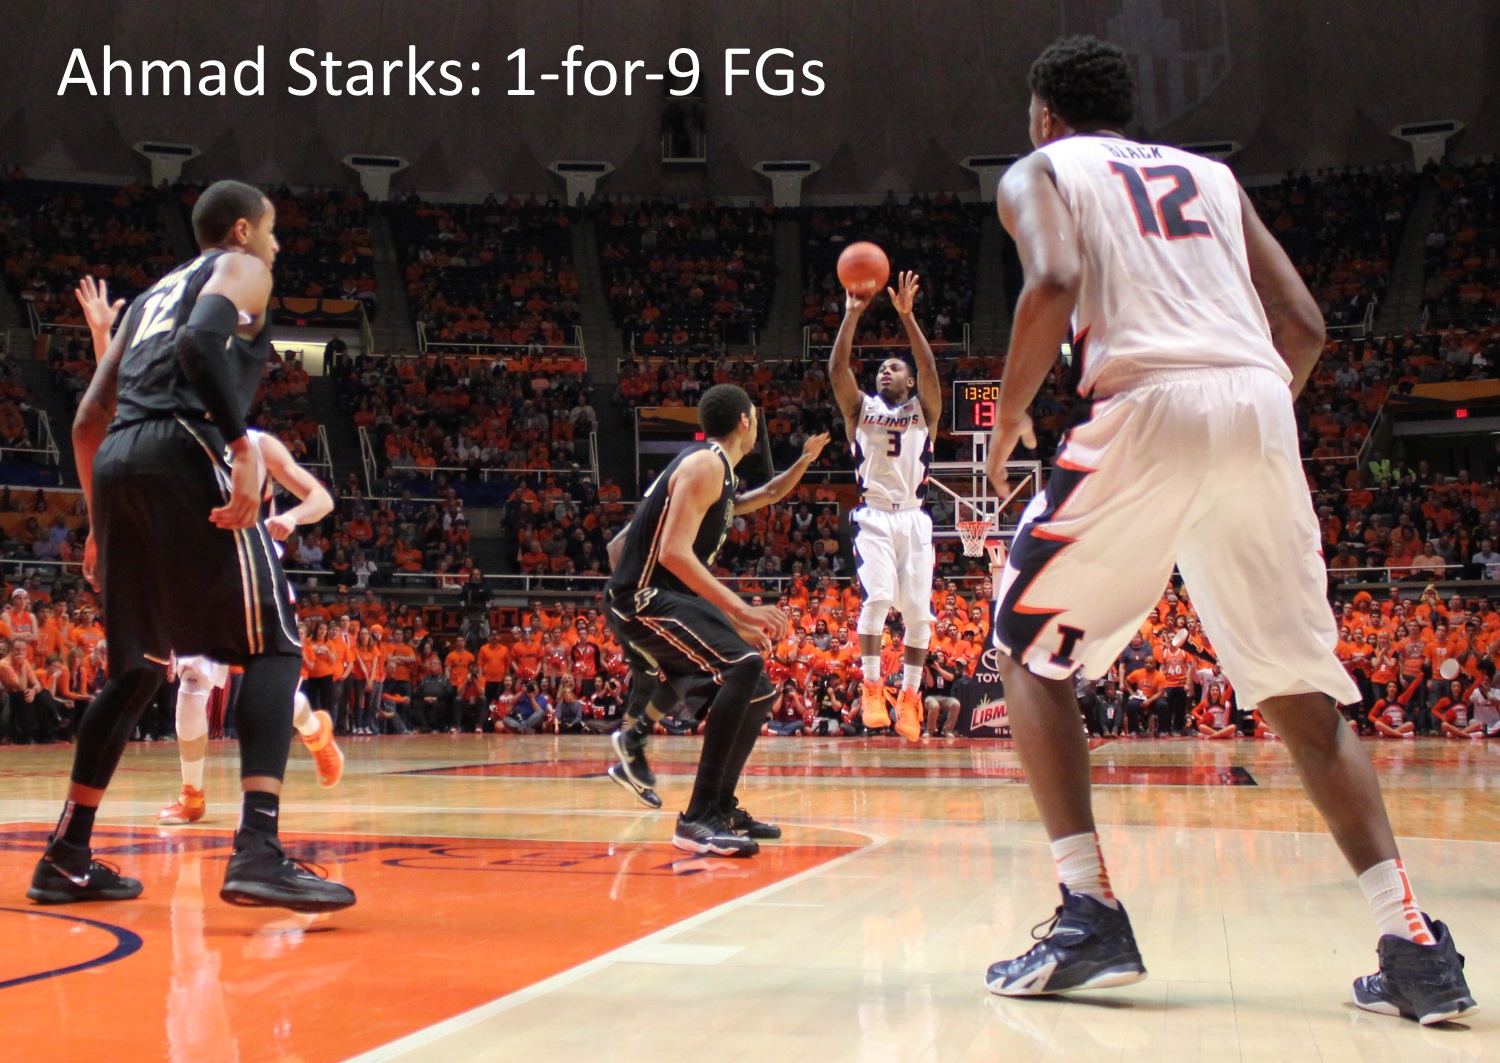 Ahmad Starks 1-for-9